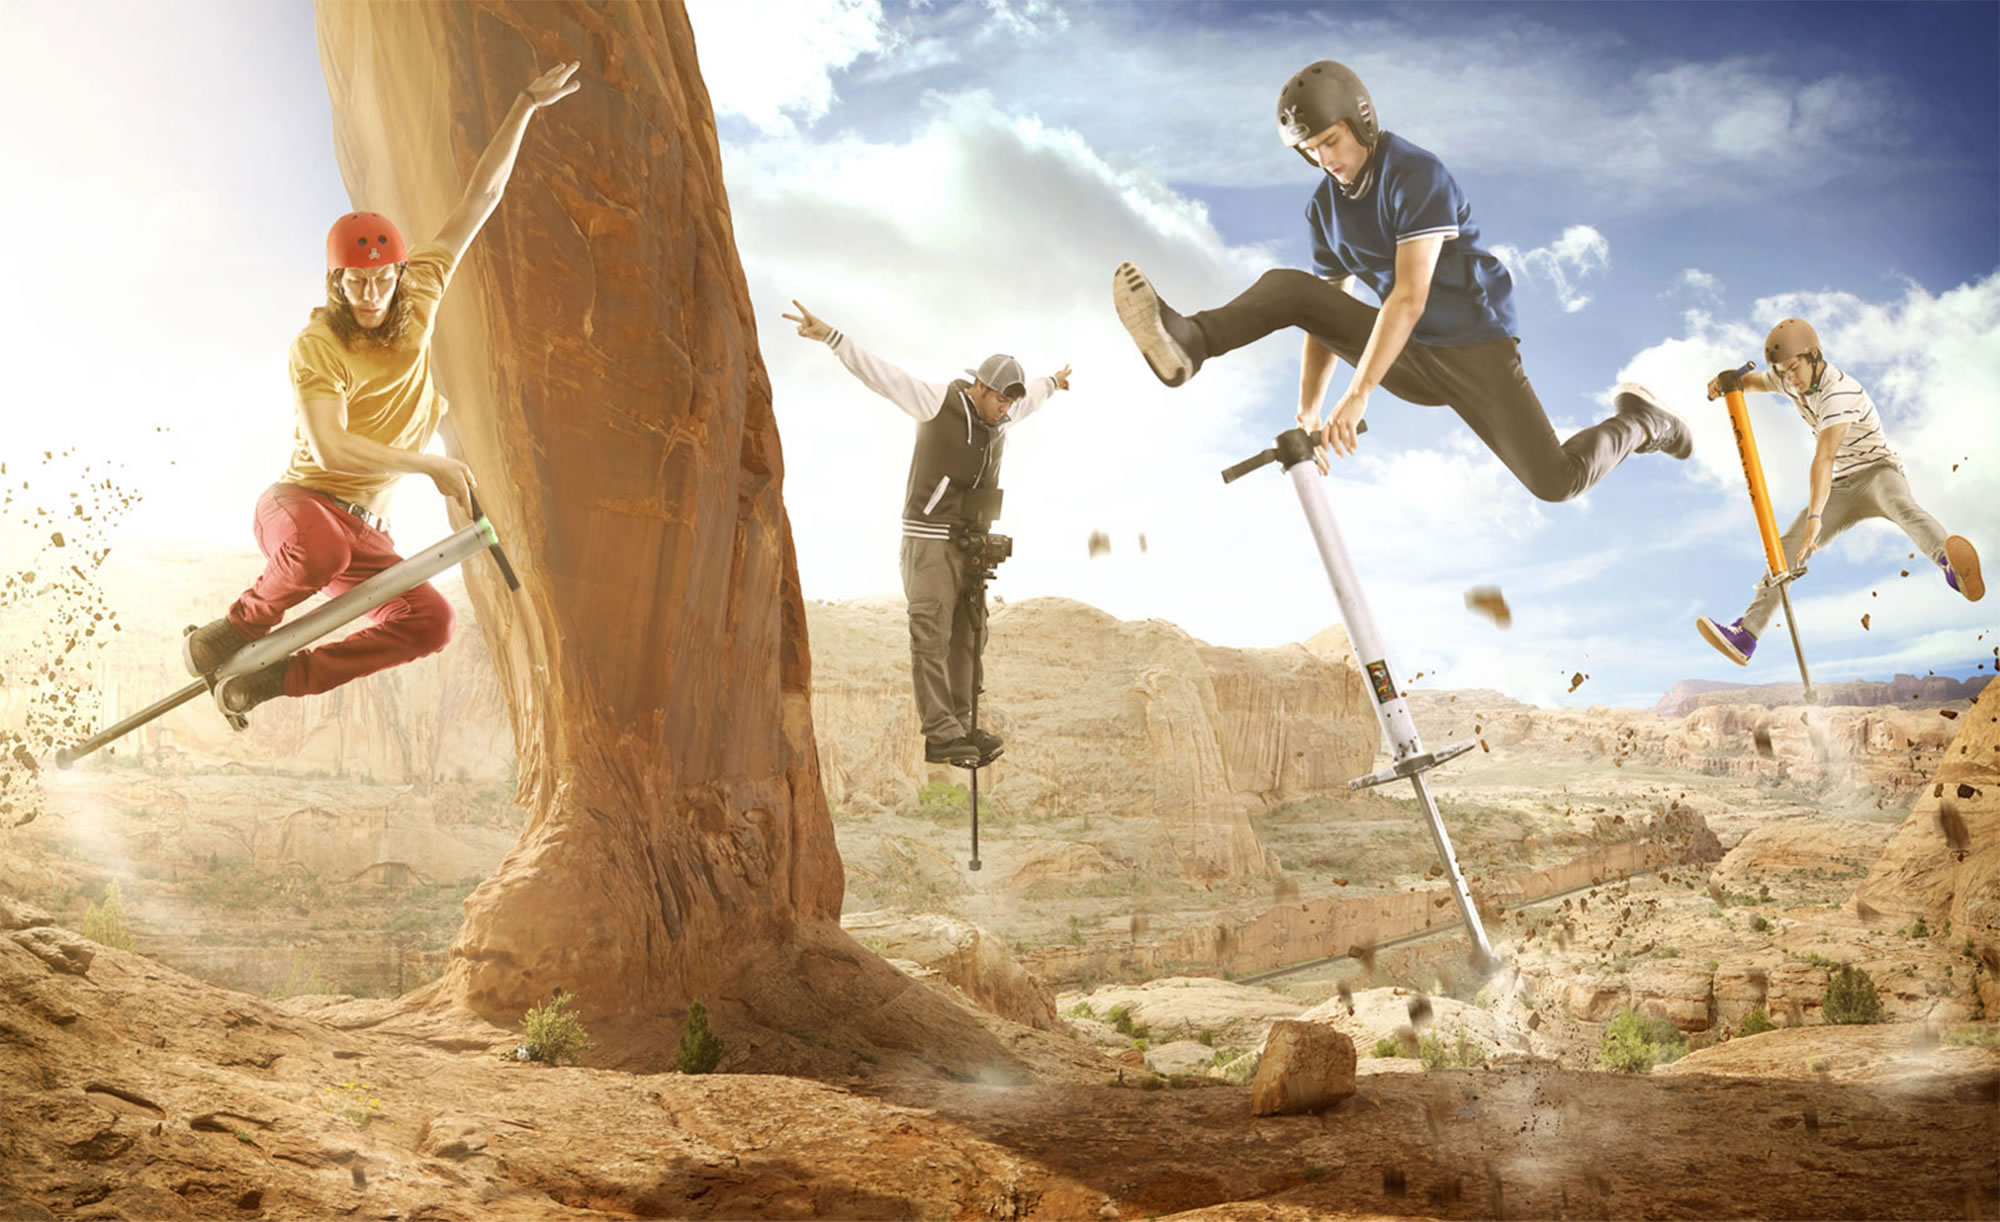 DevinSuperTramp: Capturing Extreme Pogo With the Help of LG